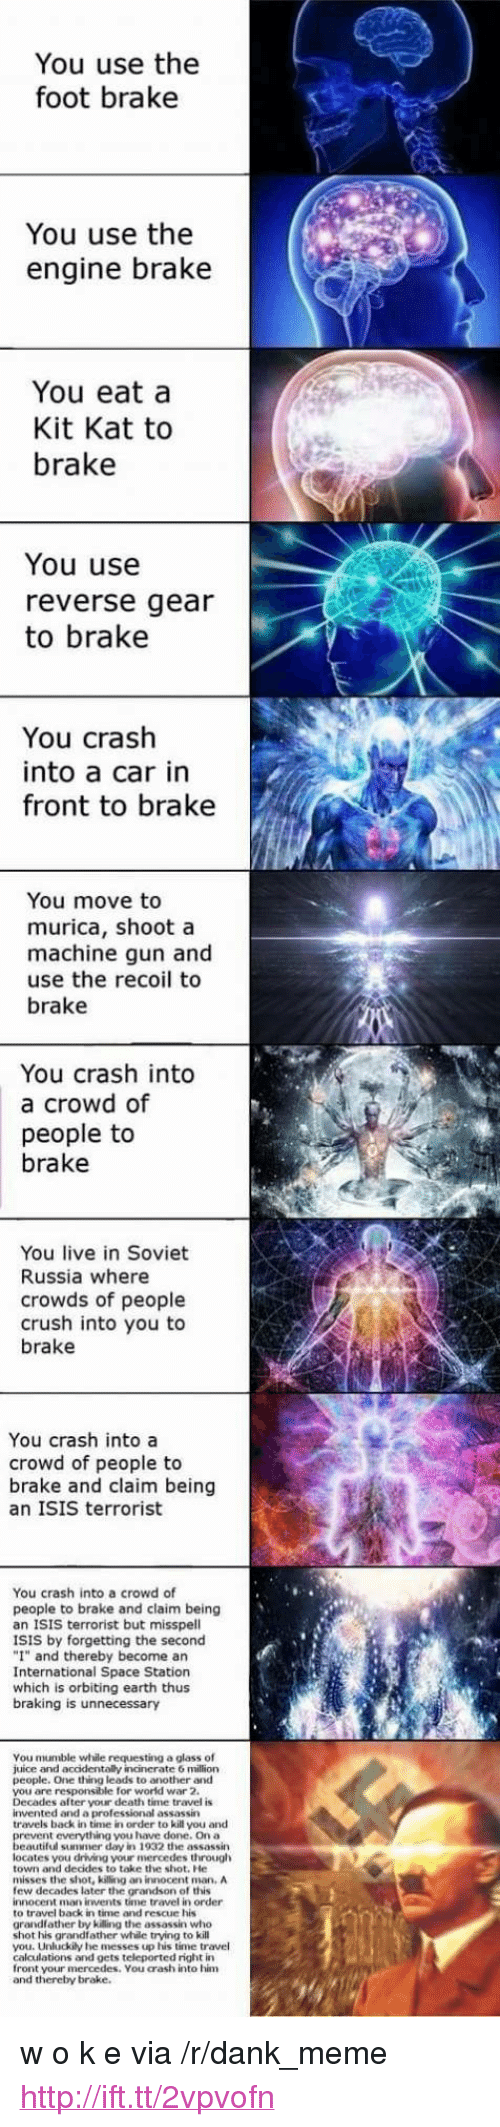 "soviet russia: You use the  foot brake  You use the  engine brake  You eat a  Kit Kat to  brake  You use  reverse gear  to brake  You crash  into a car in  front to brake  You move to  murica, shoot a  machine gun and  use the recoil to  brake  You crash into  a crowd of  people to  brake  You live in Soviet  Russia where  crowds of people  crush into you to  brake  You crash into a  crowd of people to  brake and claim being  an ISIS terrorist  You crash into a crowd of  people to brake and claim being  an ISIS terrorist but misspell  ISIS by forgetting the second  ""I"" and thereby become an  International Space Station  which is orbiting earth thus  braking is unnecessary  You mumble while requesting a glass of  juice and accidentally incinerate 6 million  people. One thing leads to another and  you are responsible for world war 2.  Decades after your death time travel is  invented and a professional assassin  travels back in time in order to kill you and  nt everything you have done. On a  eautiful summer day in 1932 the assassin  locates you driving your mercedes through  town and decides to take the shot. He  misses the shot, killing an innocent mman. A  few decades later the grandson of this  innocent man invents time travel in order  to travel back in time and rescue his  grandlather by killing the assassin who  shot his grandfather while trying to kill  you. Unluckily he messes up his time travel  calculations and gets teleported right in  front your mercedes. You crash into him  and thereby brake. <p>w o k e via /r/dank_meme <a href=""http://ift.tt/2vpvofn"">http://ift.tt/2vpvofn</a></p>"